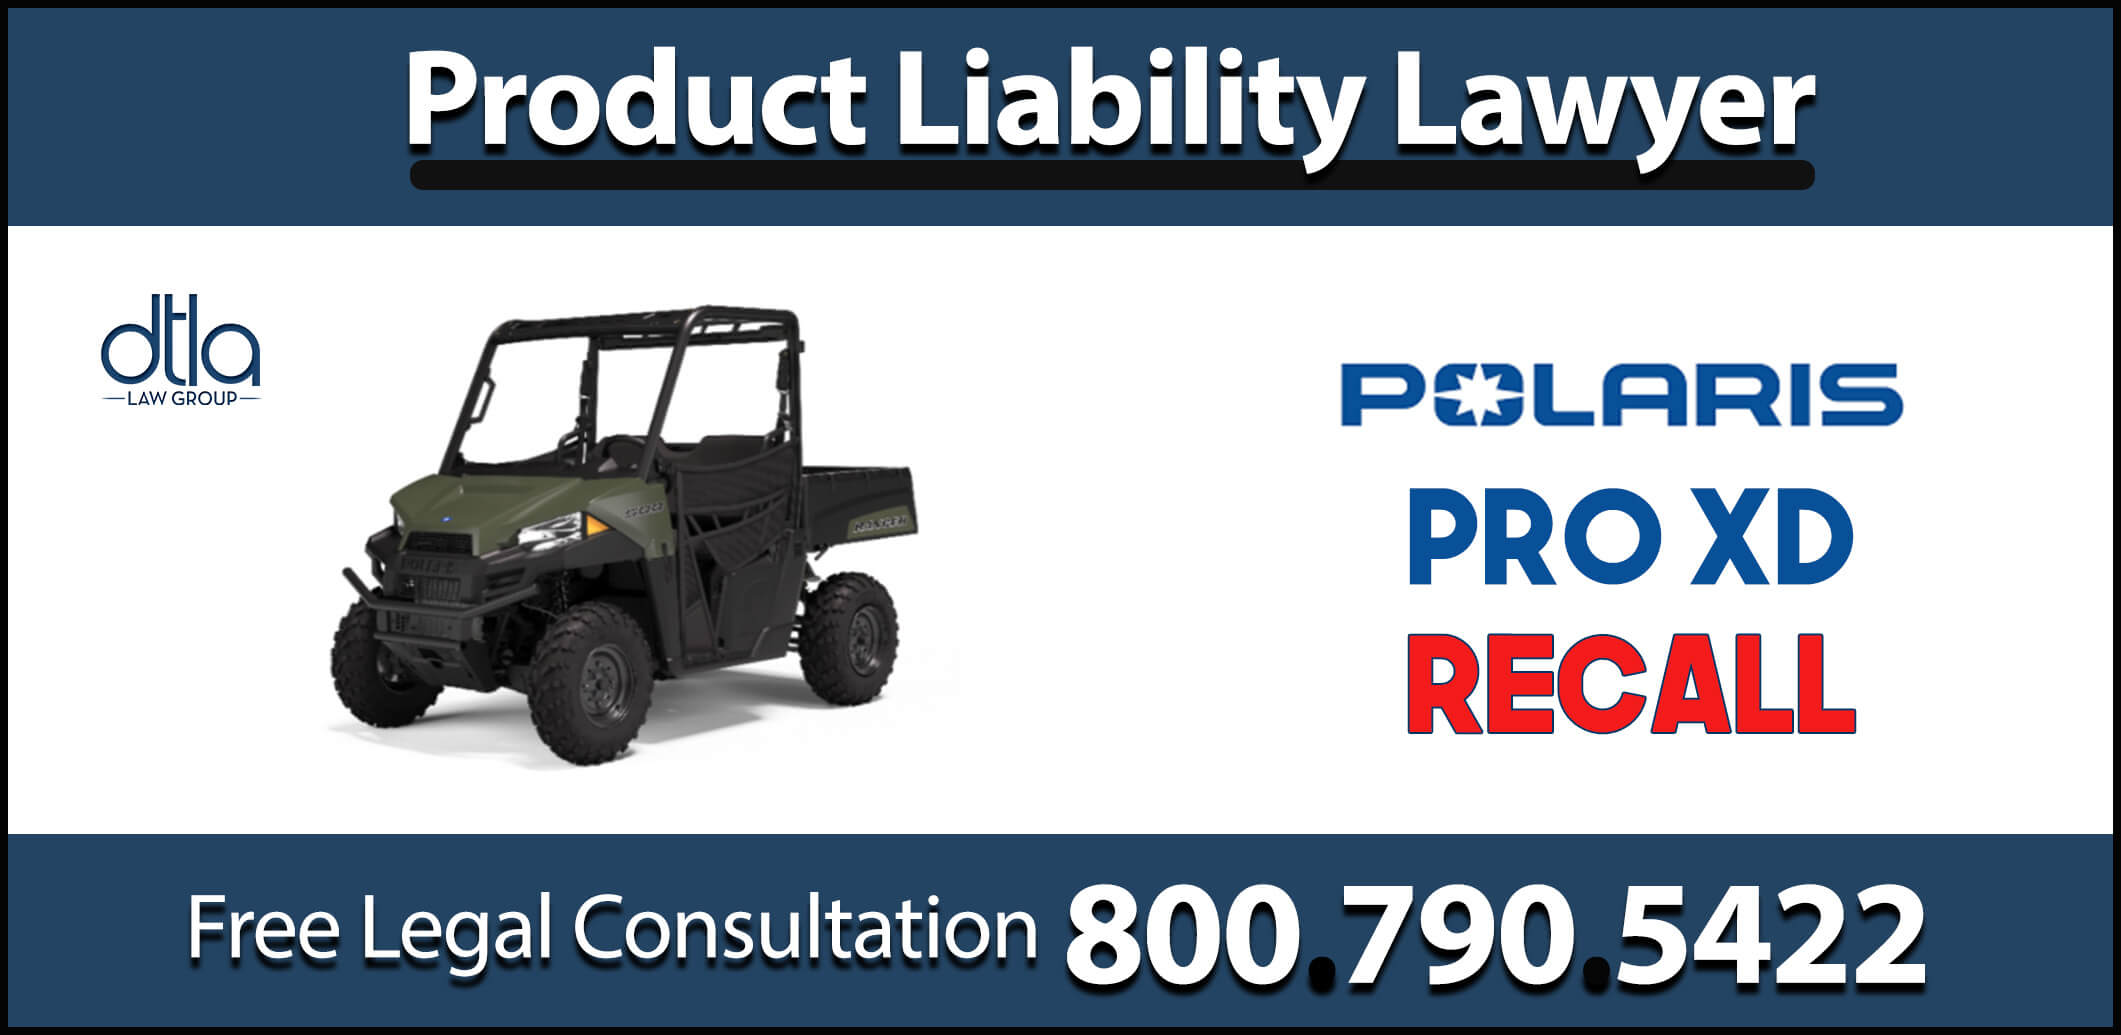 polaris pro xd recall product liability lawyer lawsuit compensation sue medical expenses accident design error hazard warning compensation sue